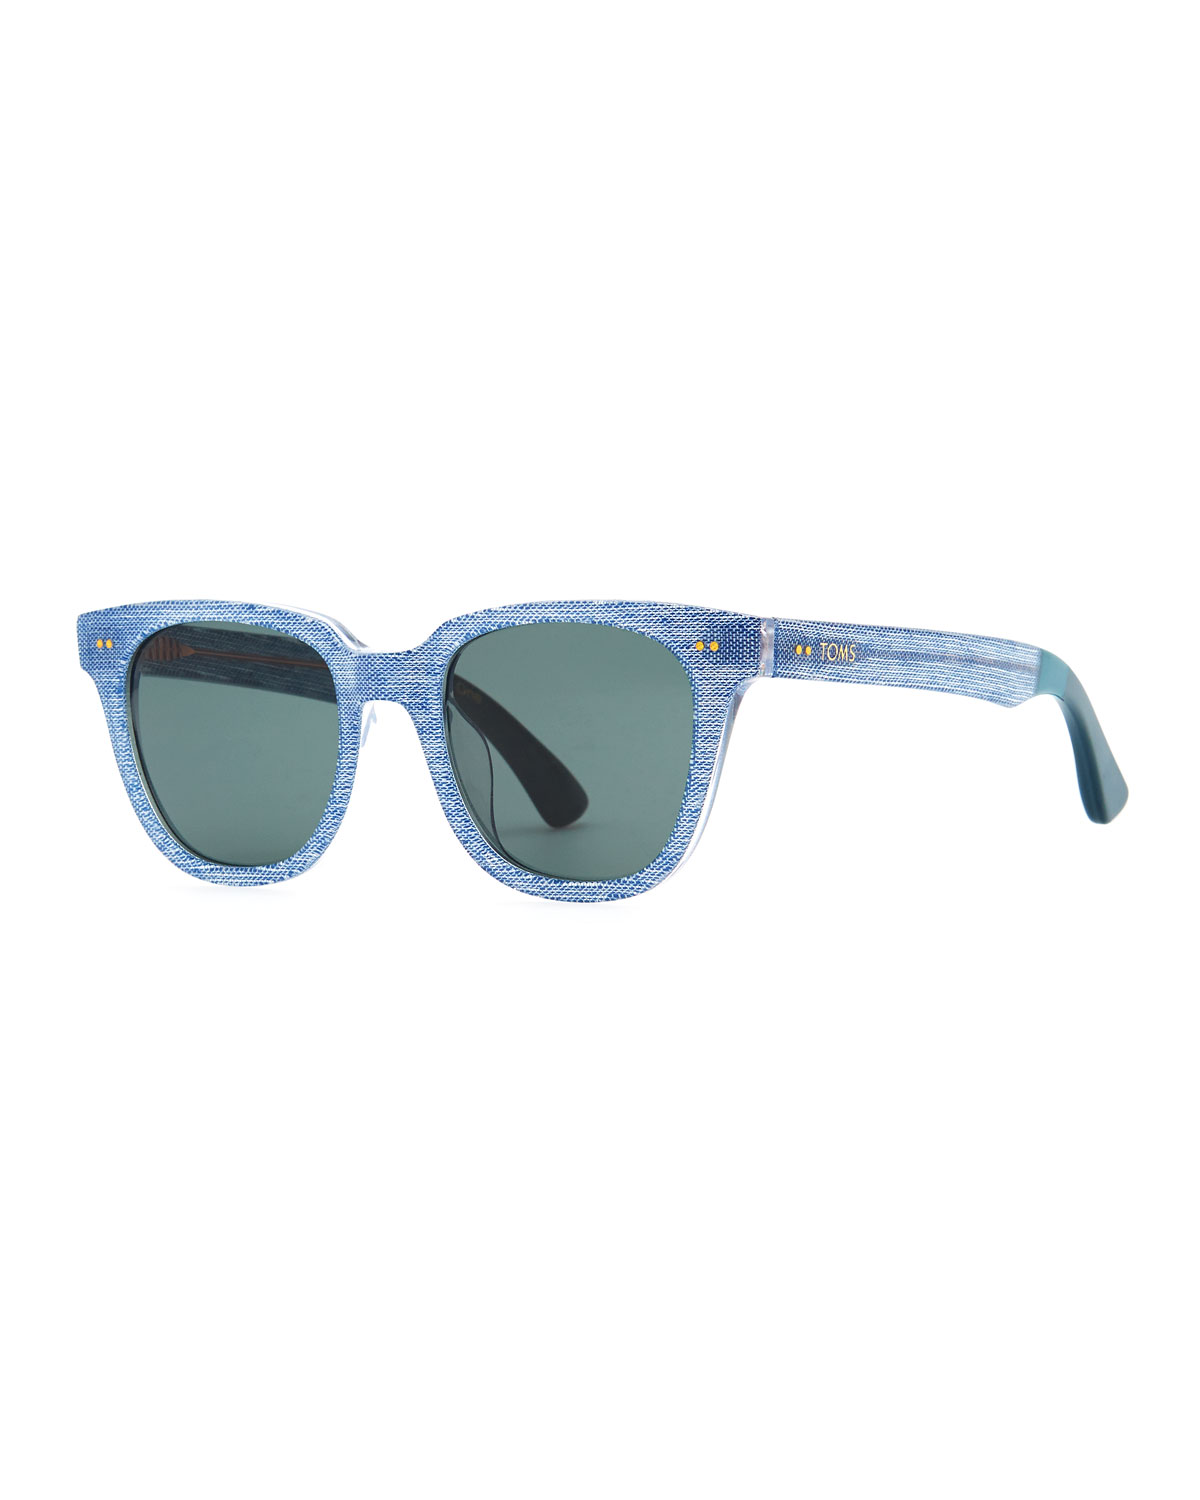 Eyeglass Frames In Memphis Tn : Toms Memphis Chambray Sunglasses in Blue (chambray) Lyst